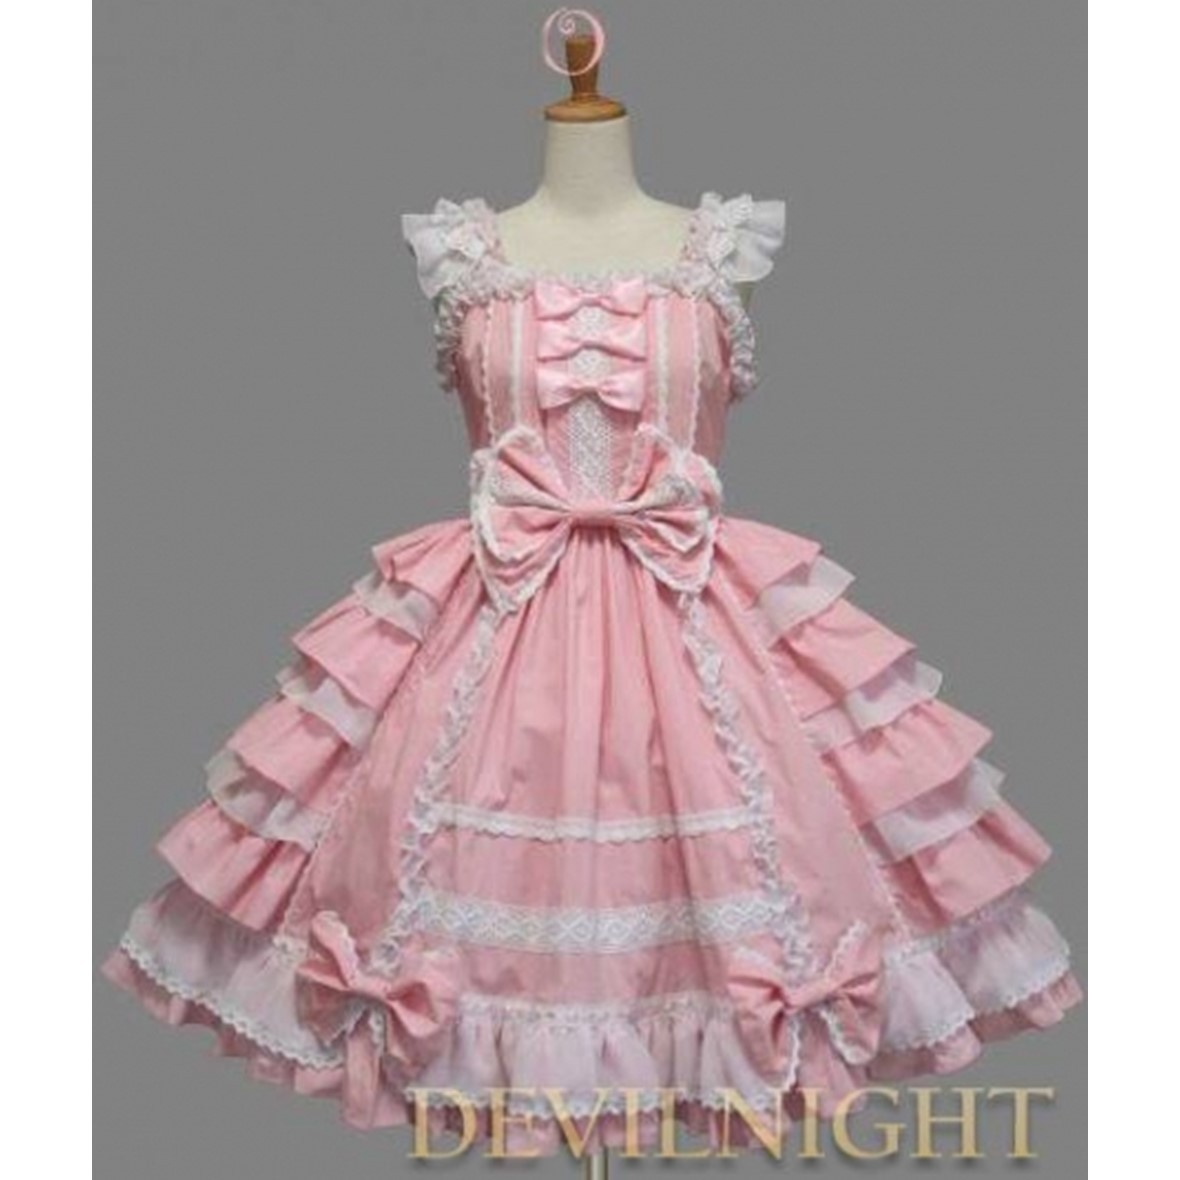 ◆DevilNight◆PINK AND WHITE SLEEVELESS SWEET LOLITA DRESS